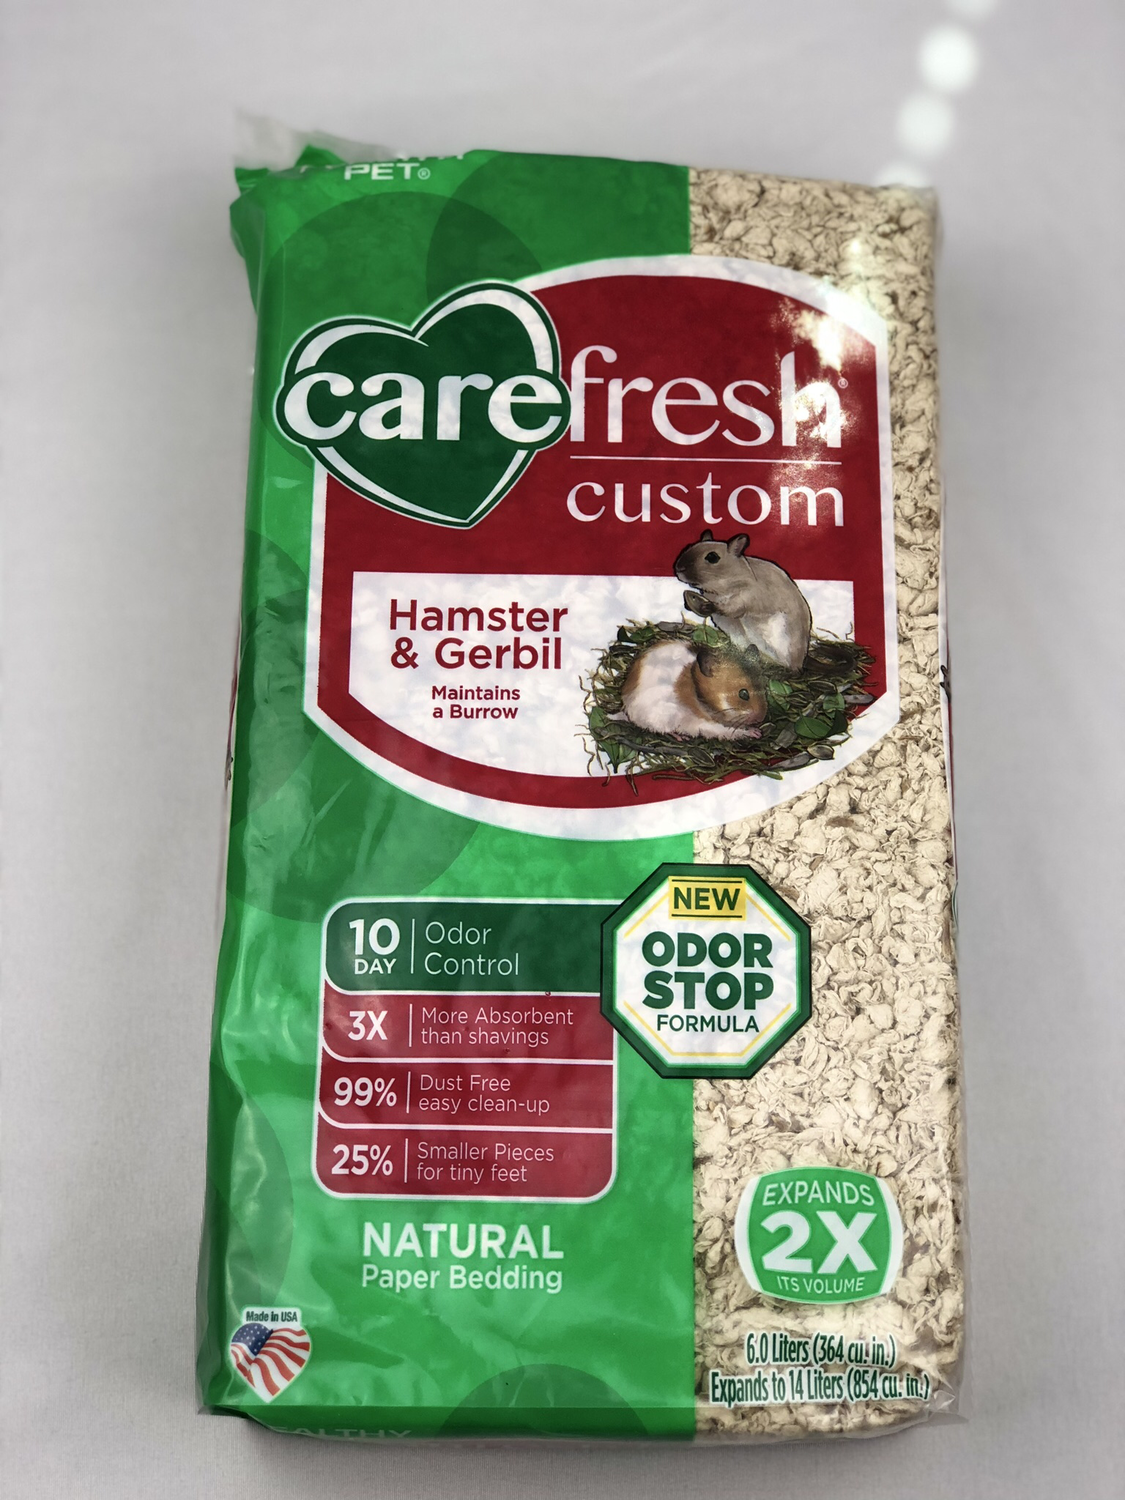 Carefresh Custom Hamster/Gerbil Bedding - Natural